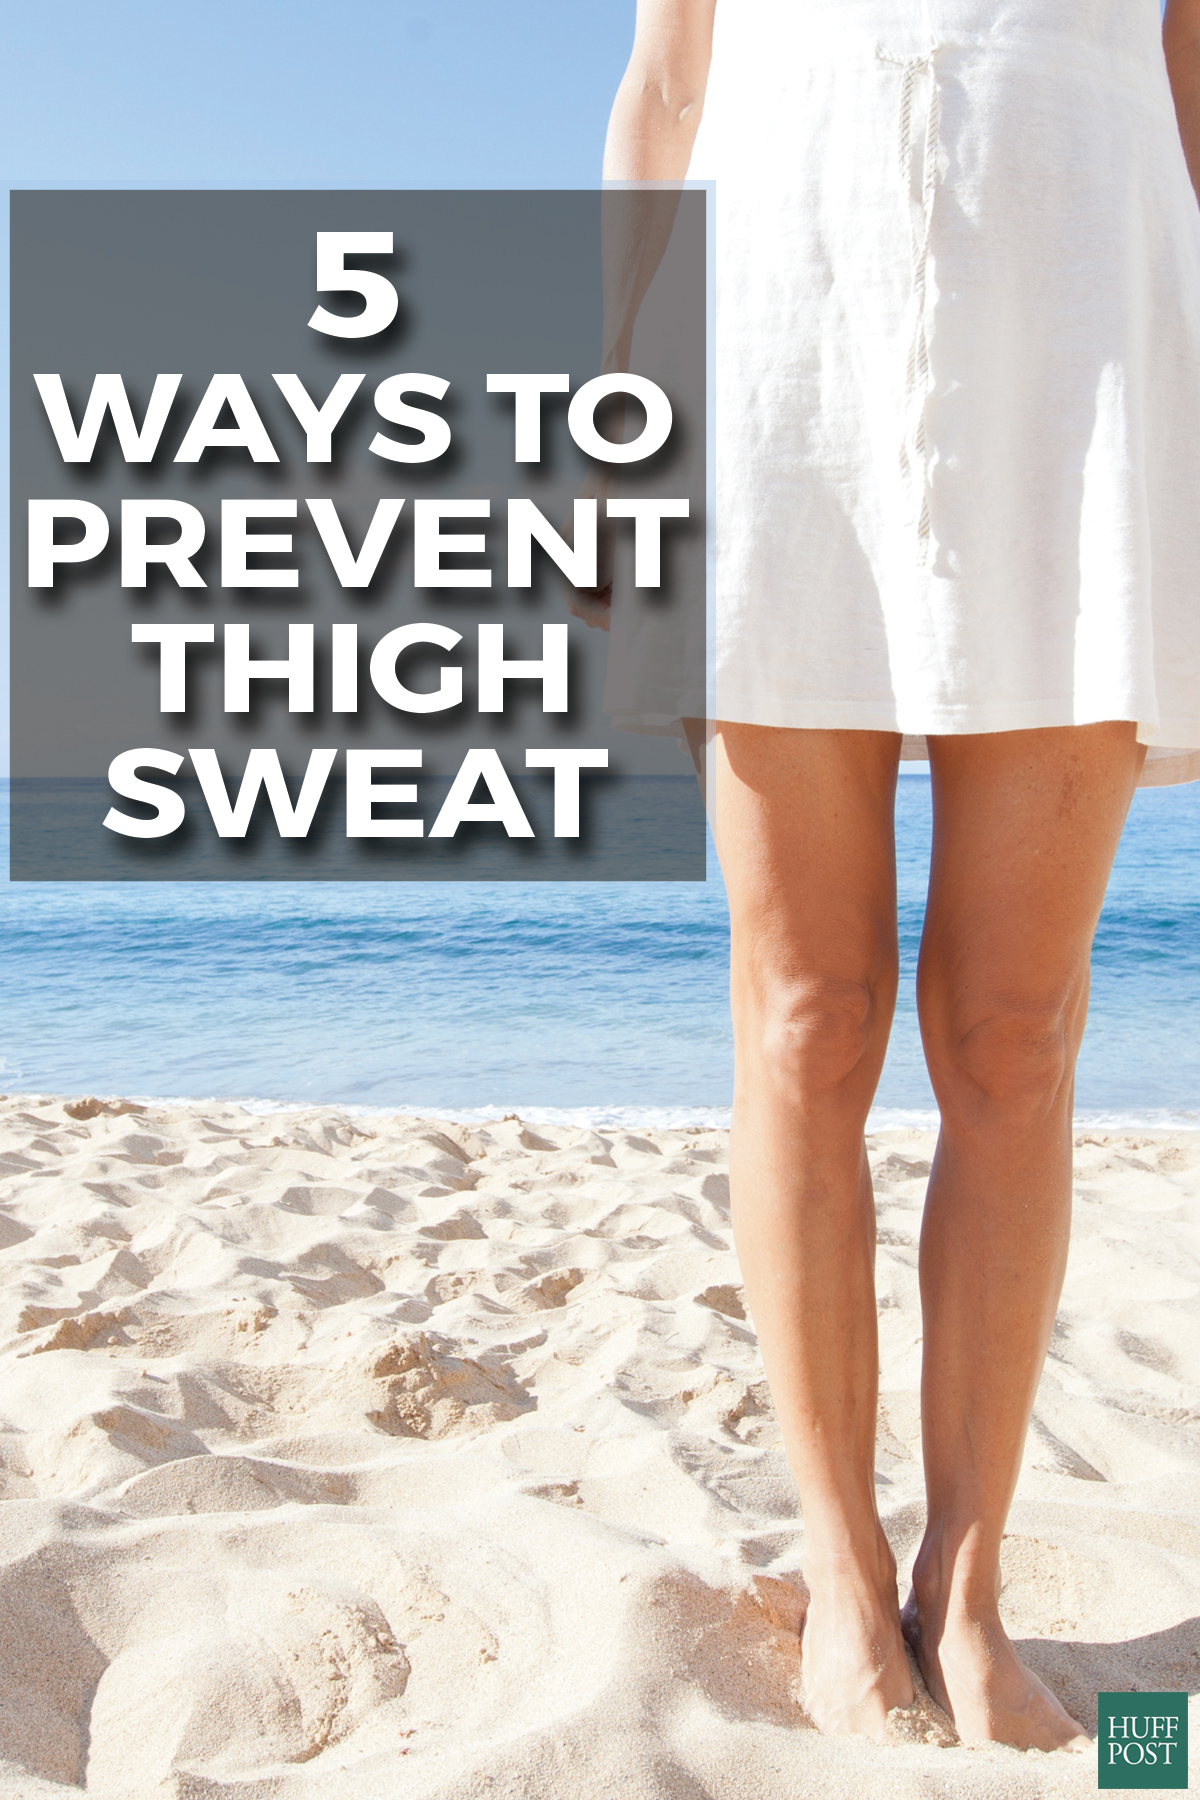 thigh sweat